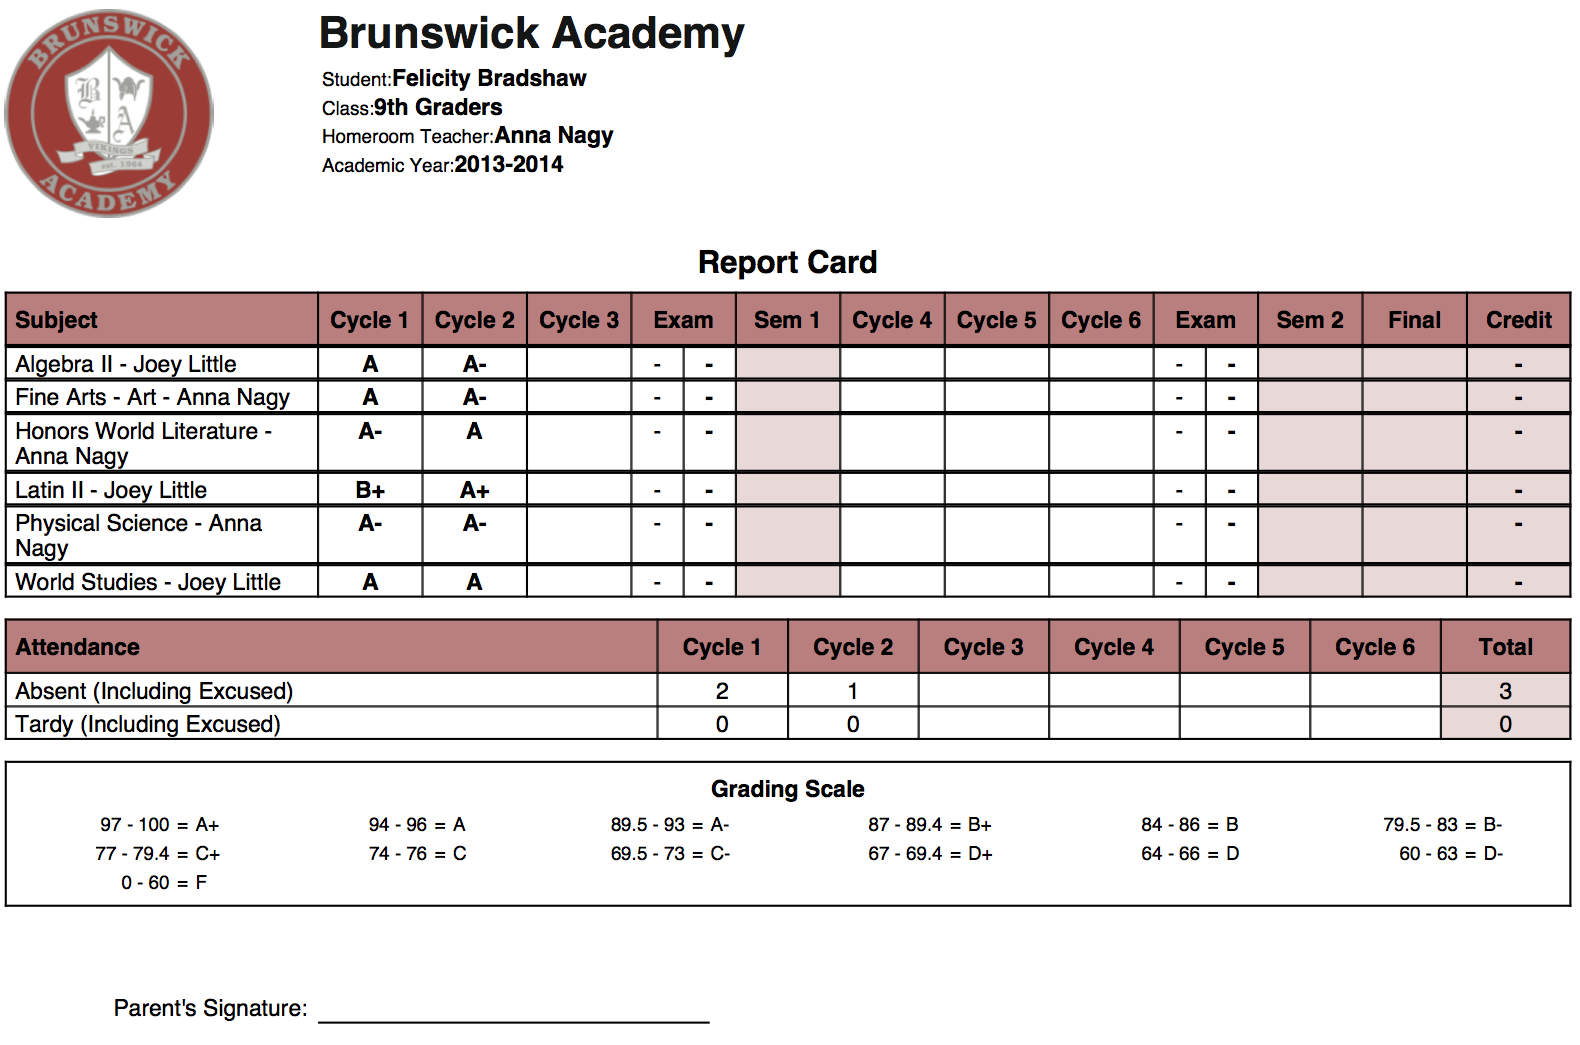 image High school report card bsd